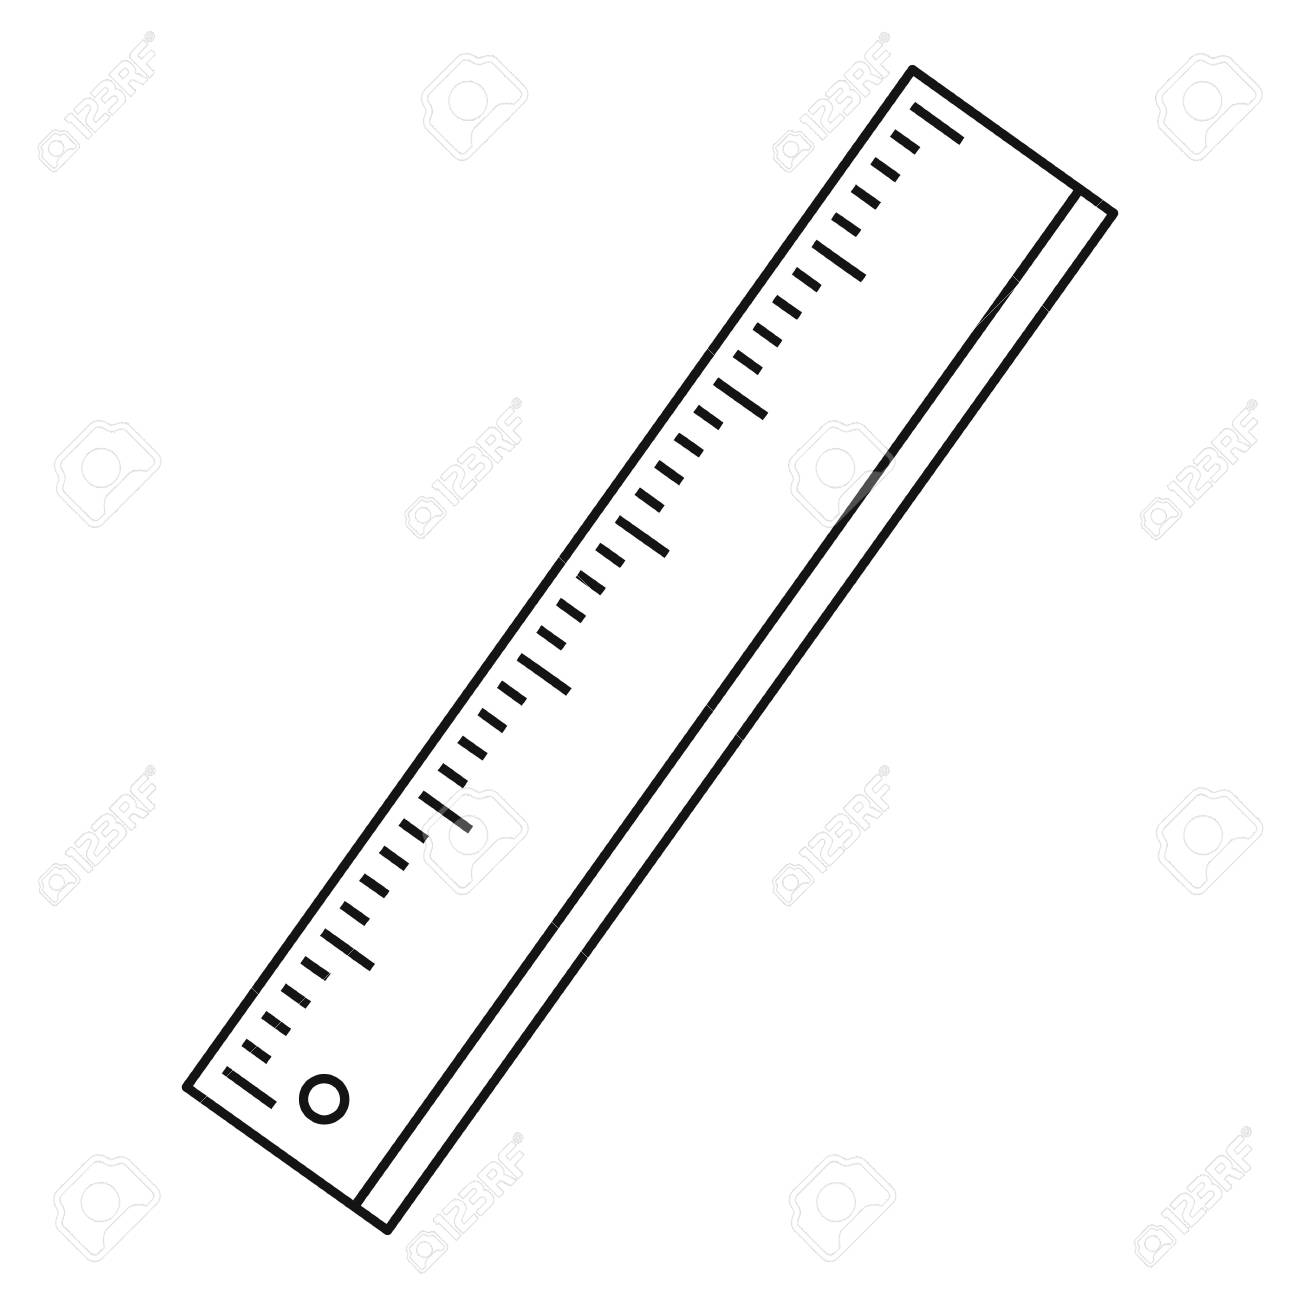 ruler icon outline illustration of ruler vector icon for web rh 123rf com victor rules vector rules